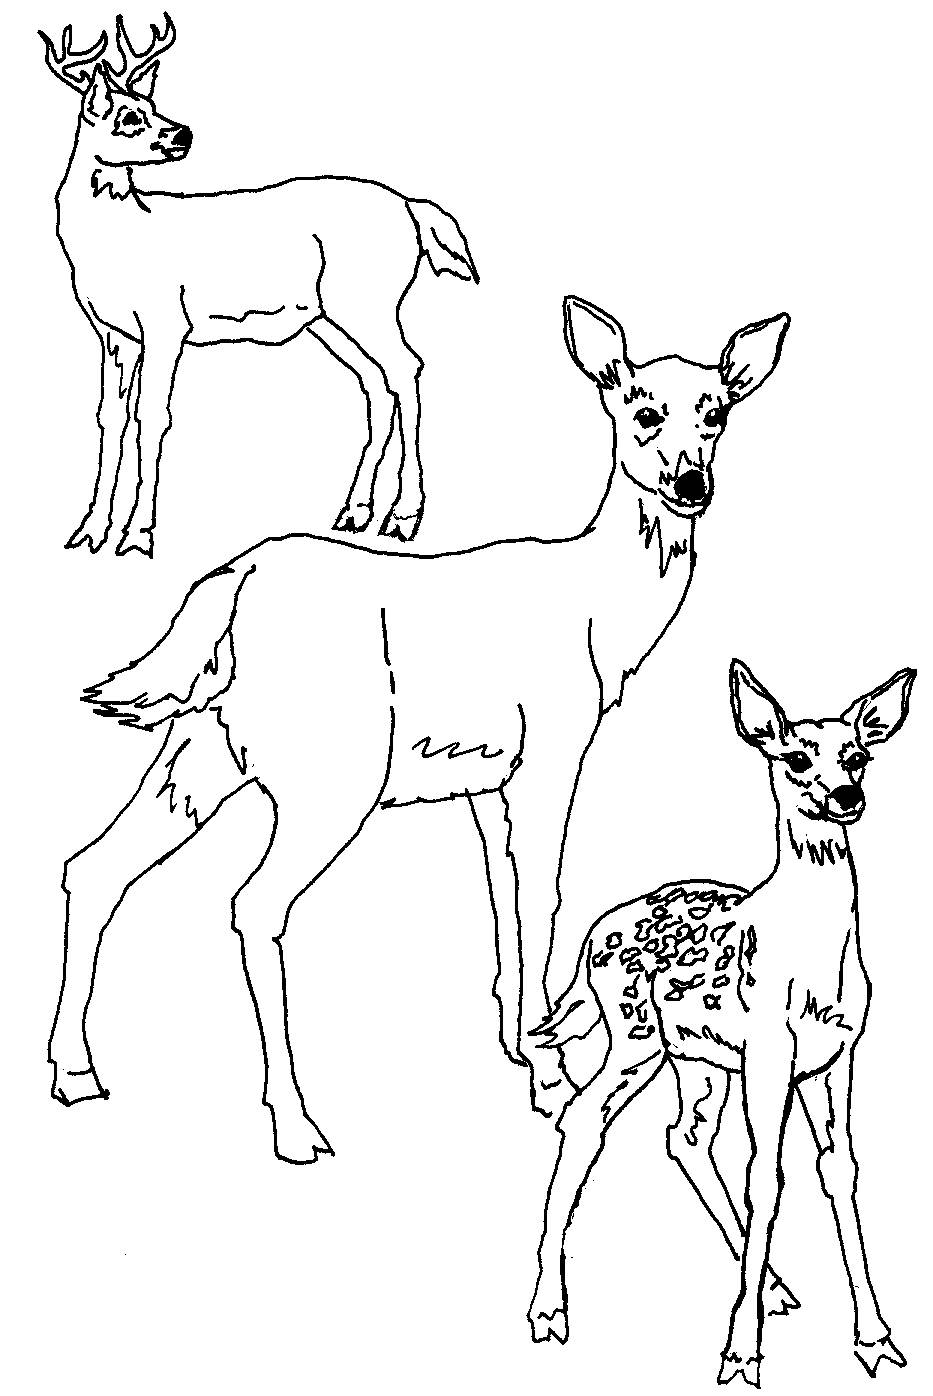 free printable deer coloring pages for kids - Deer Coloring Pages